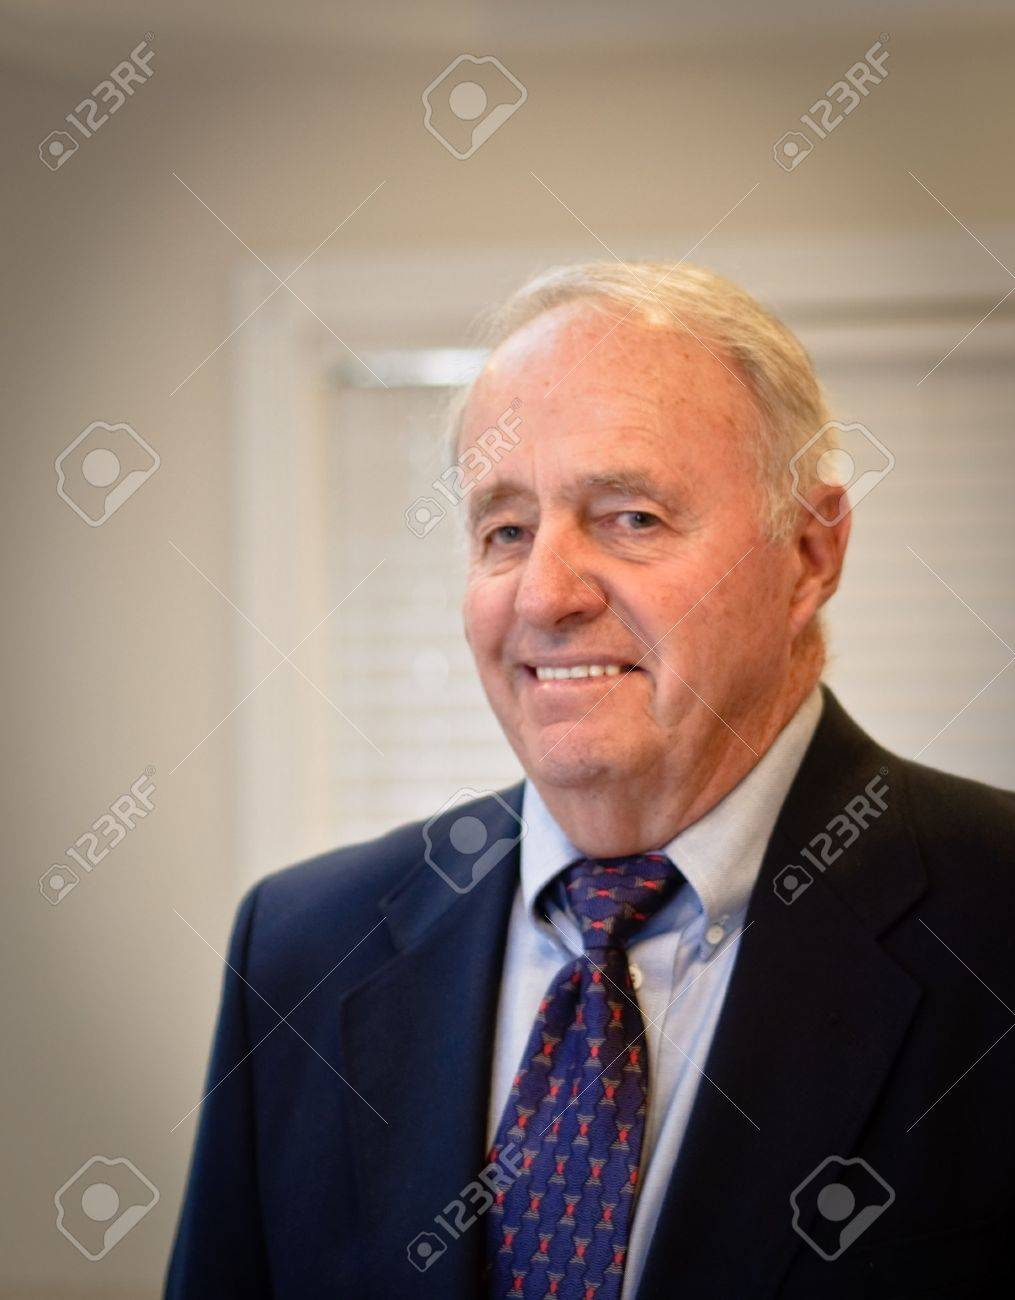 Senior male dressed in suit and tie Stock Photo - 7504841